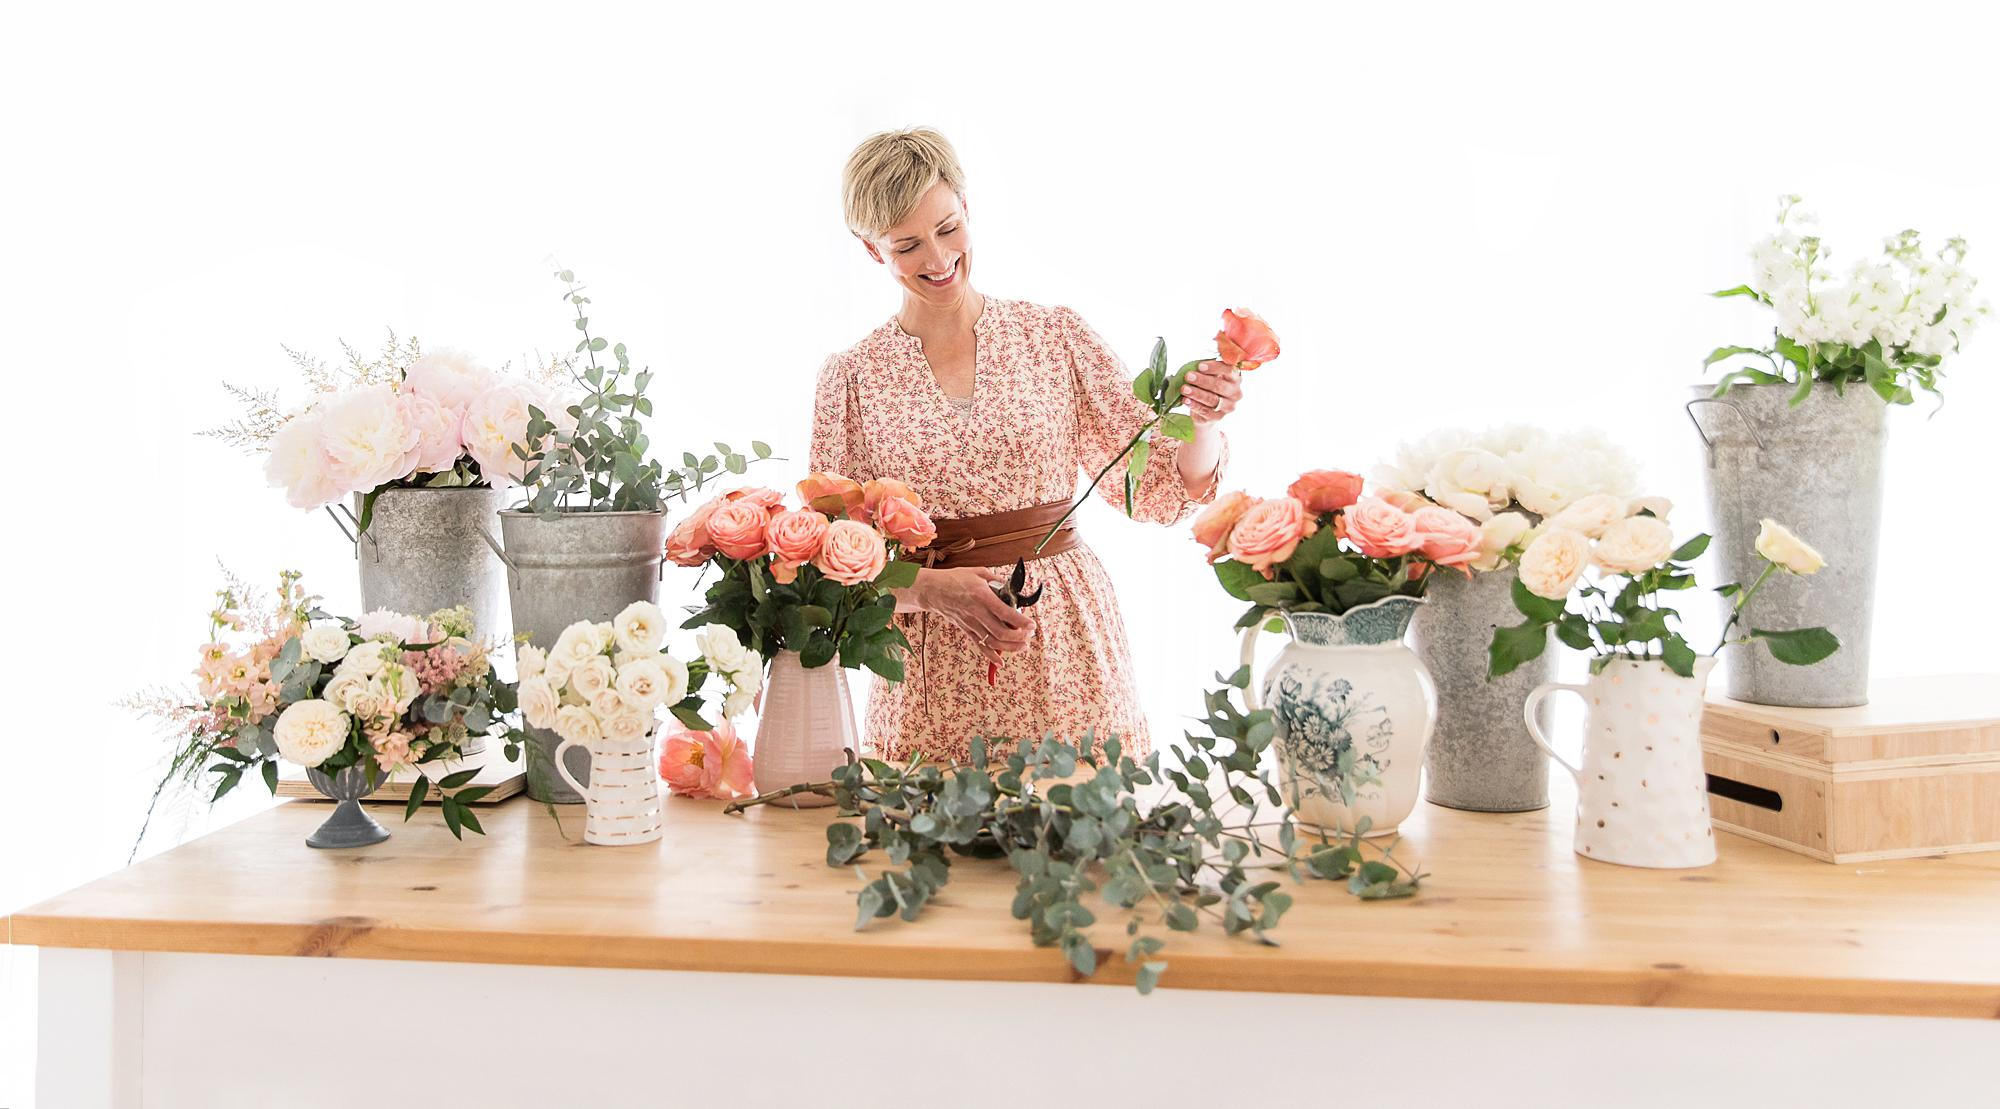 Florist cuts her roses during her Personal Branding Photoshoot